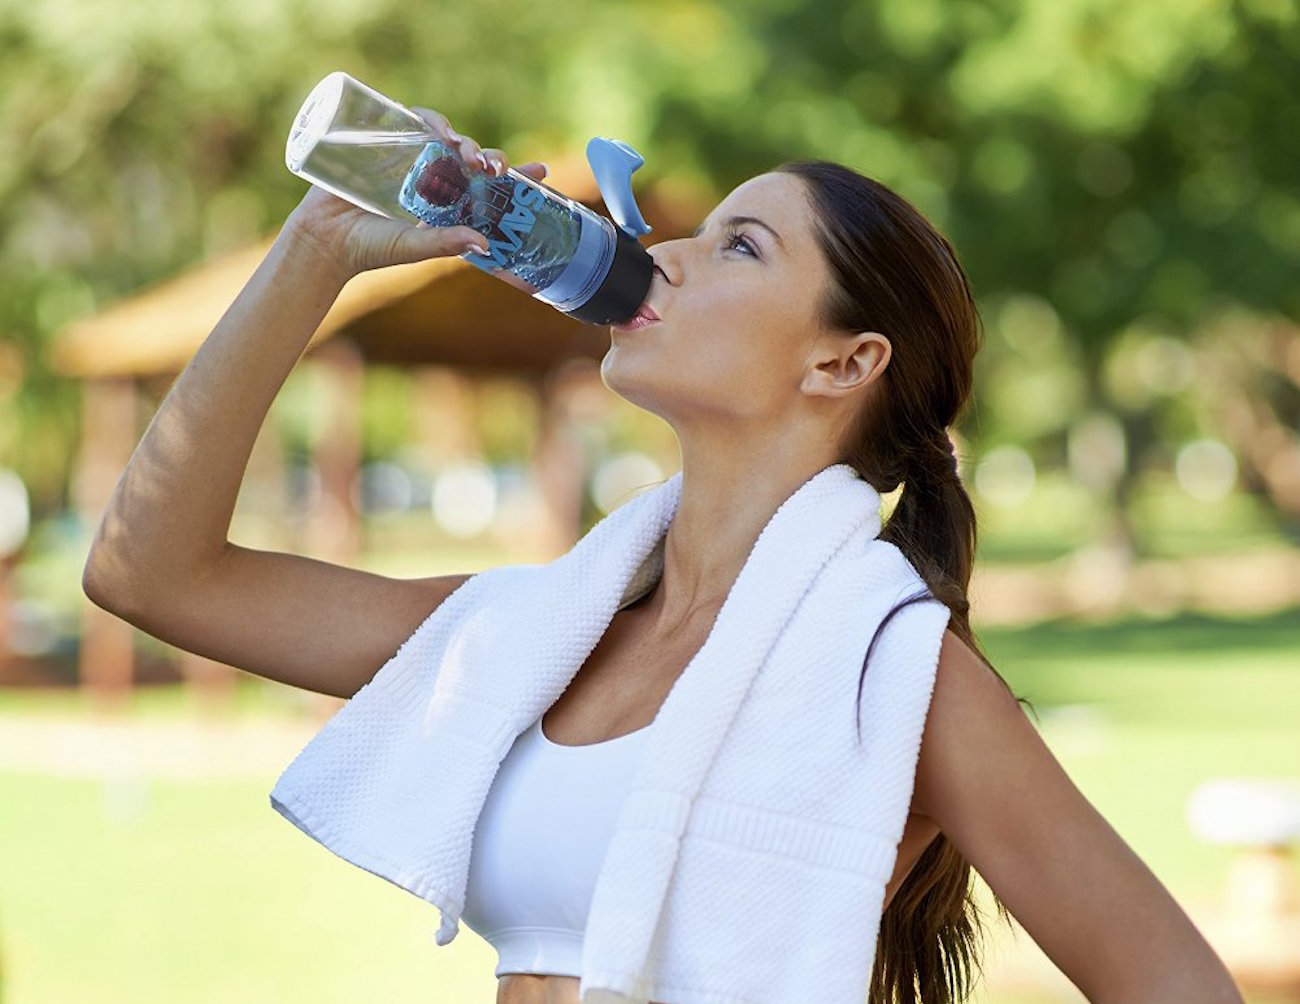 Flip+Top+Sport+Infuser+Water+Bottle+By+Savvy+Infusion